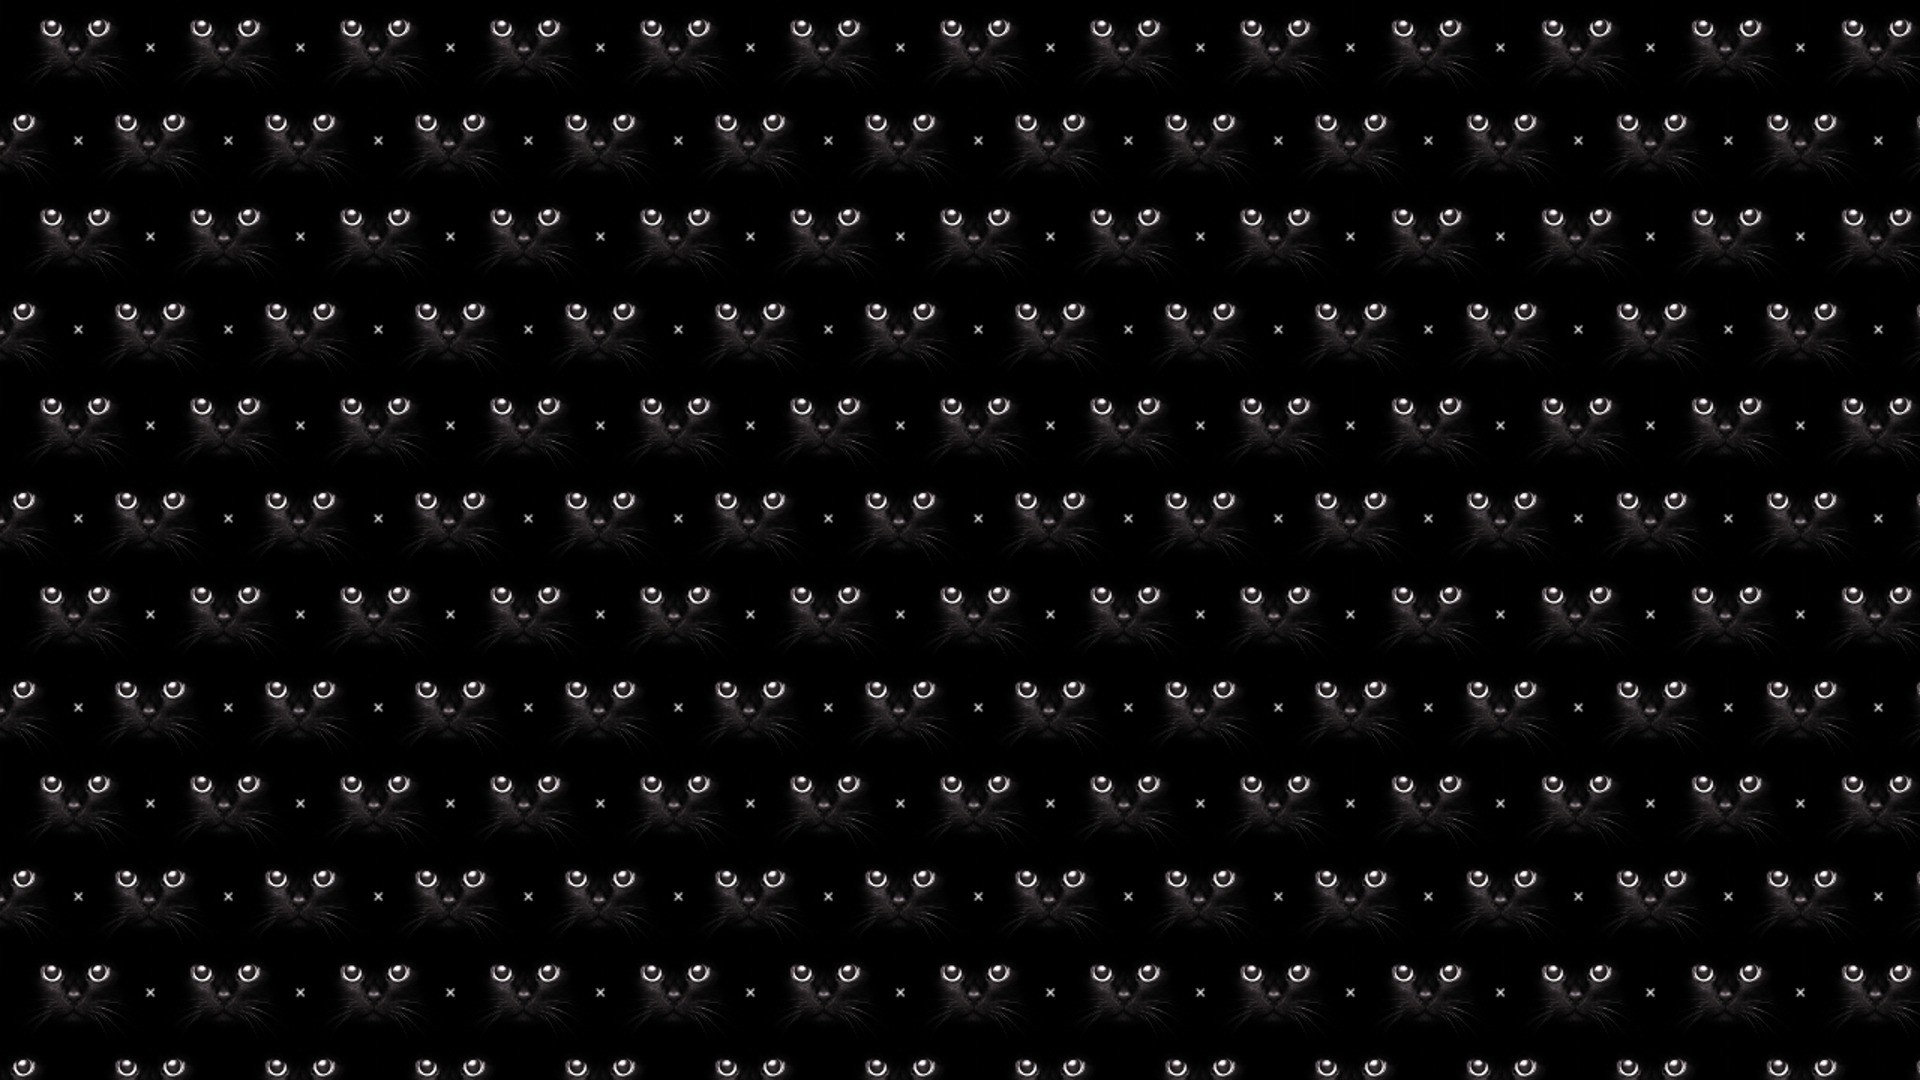 Cute Black Free Wallpaper and Background